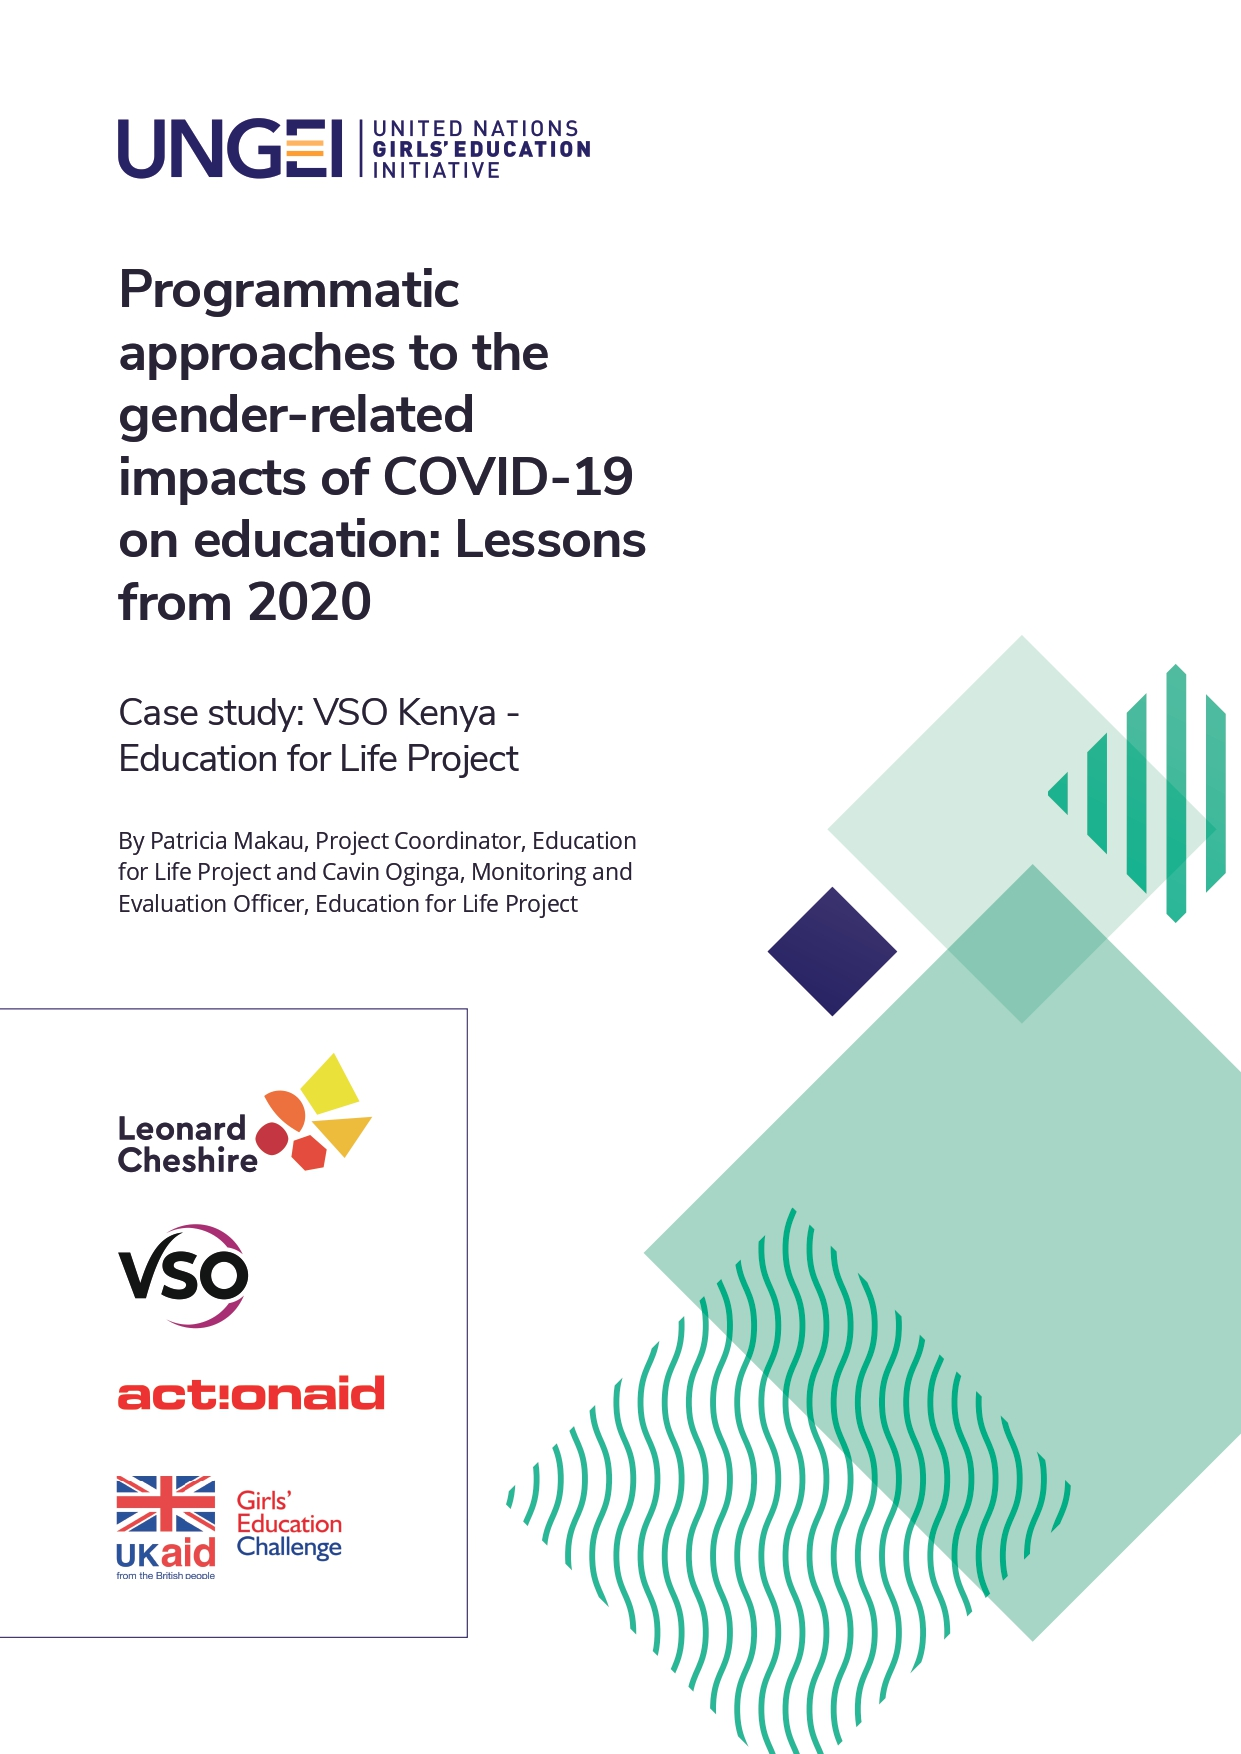 Case study: VSO Kenya - Education for Life Project